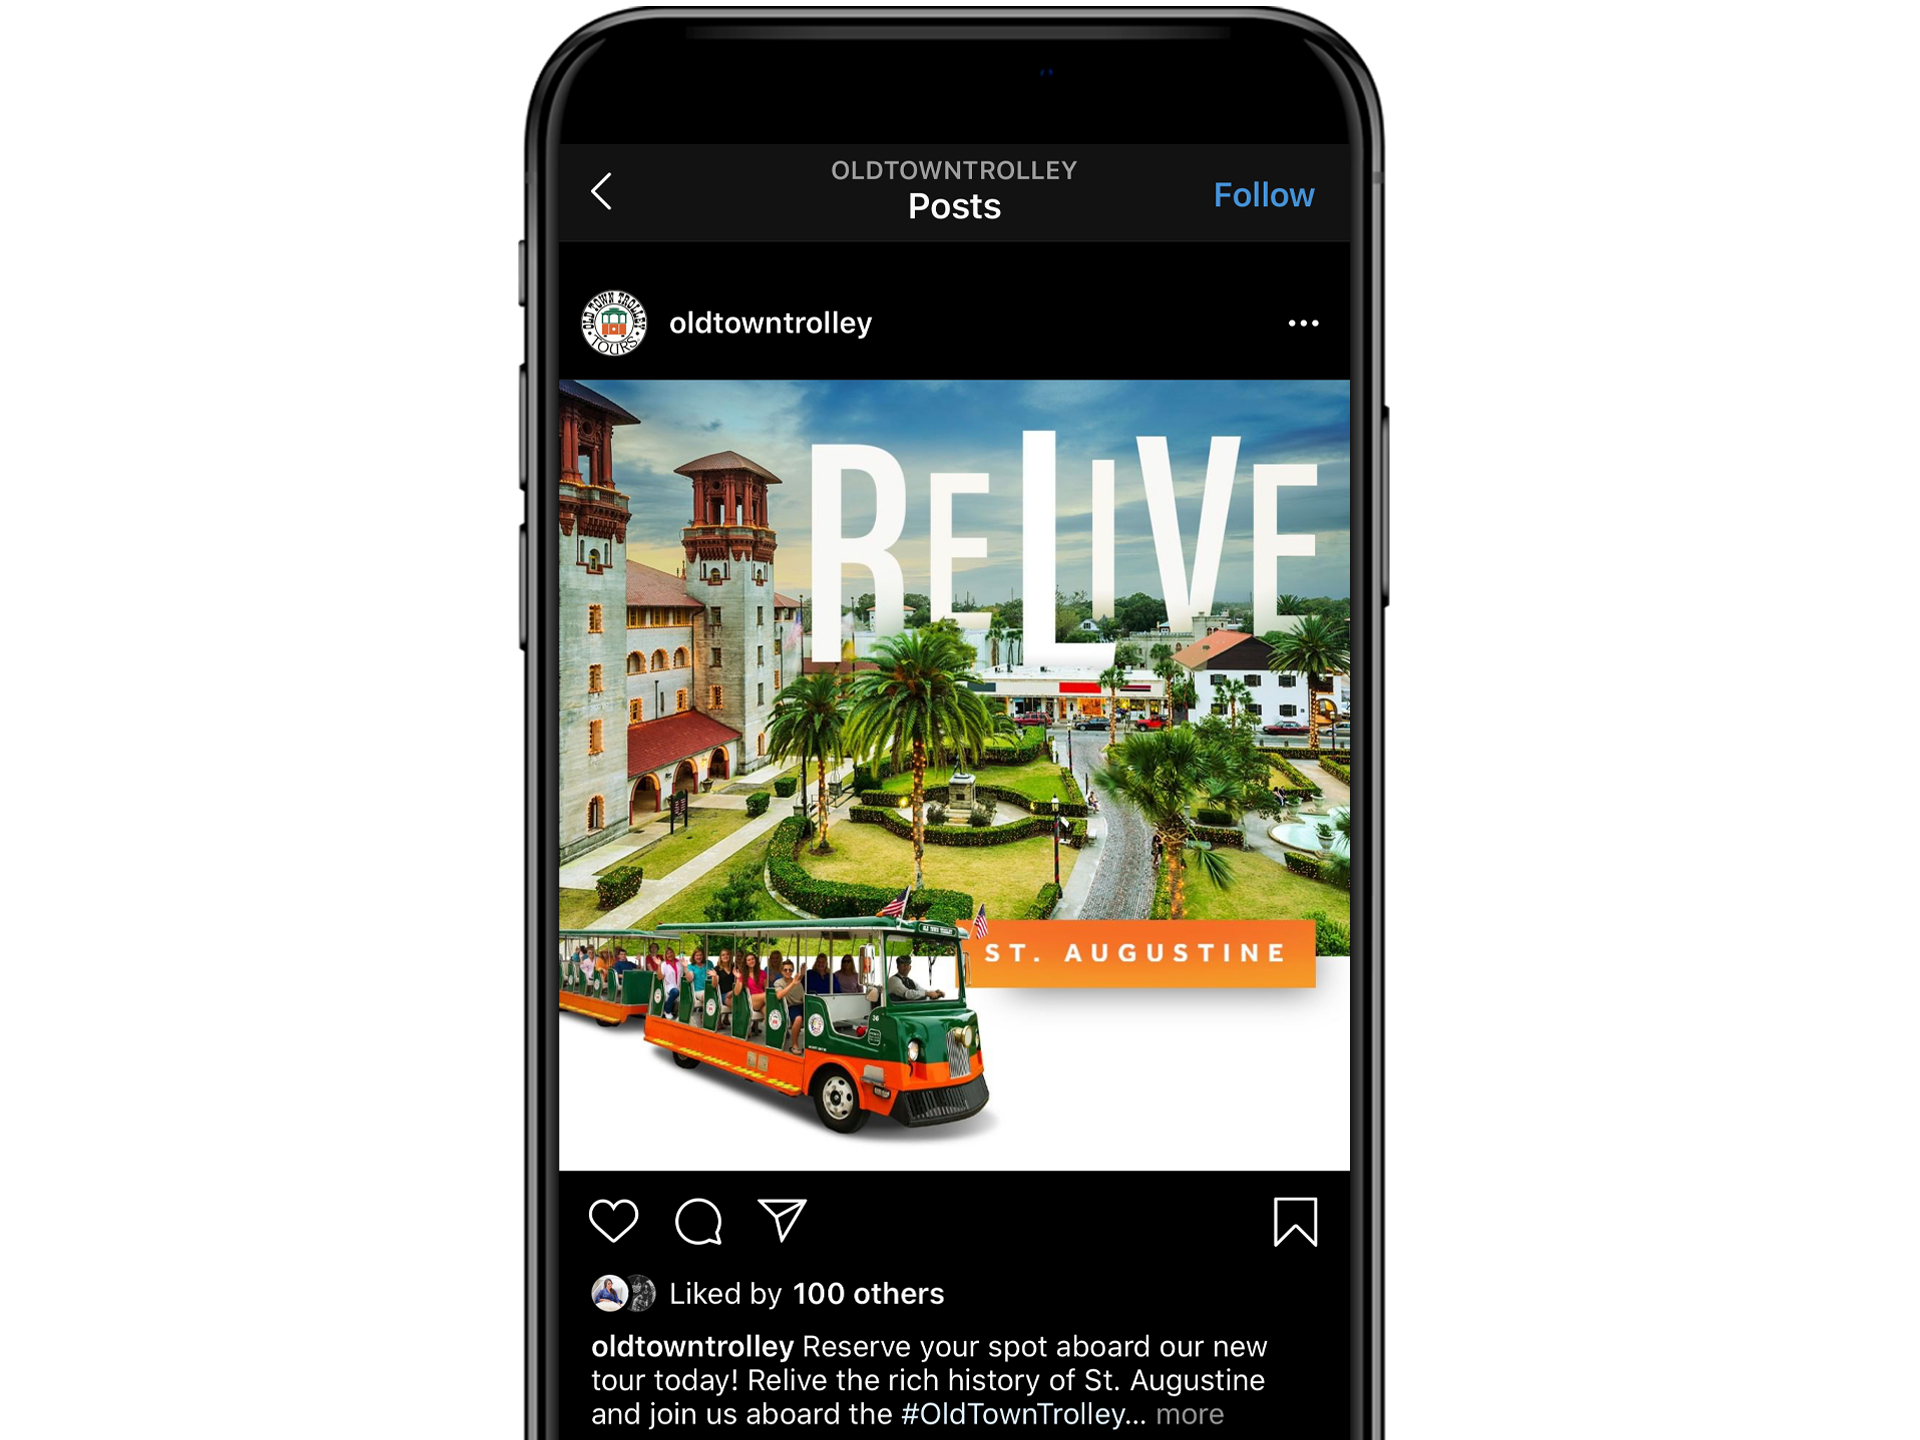 iPhone showing Old Town Trolley Instagram post